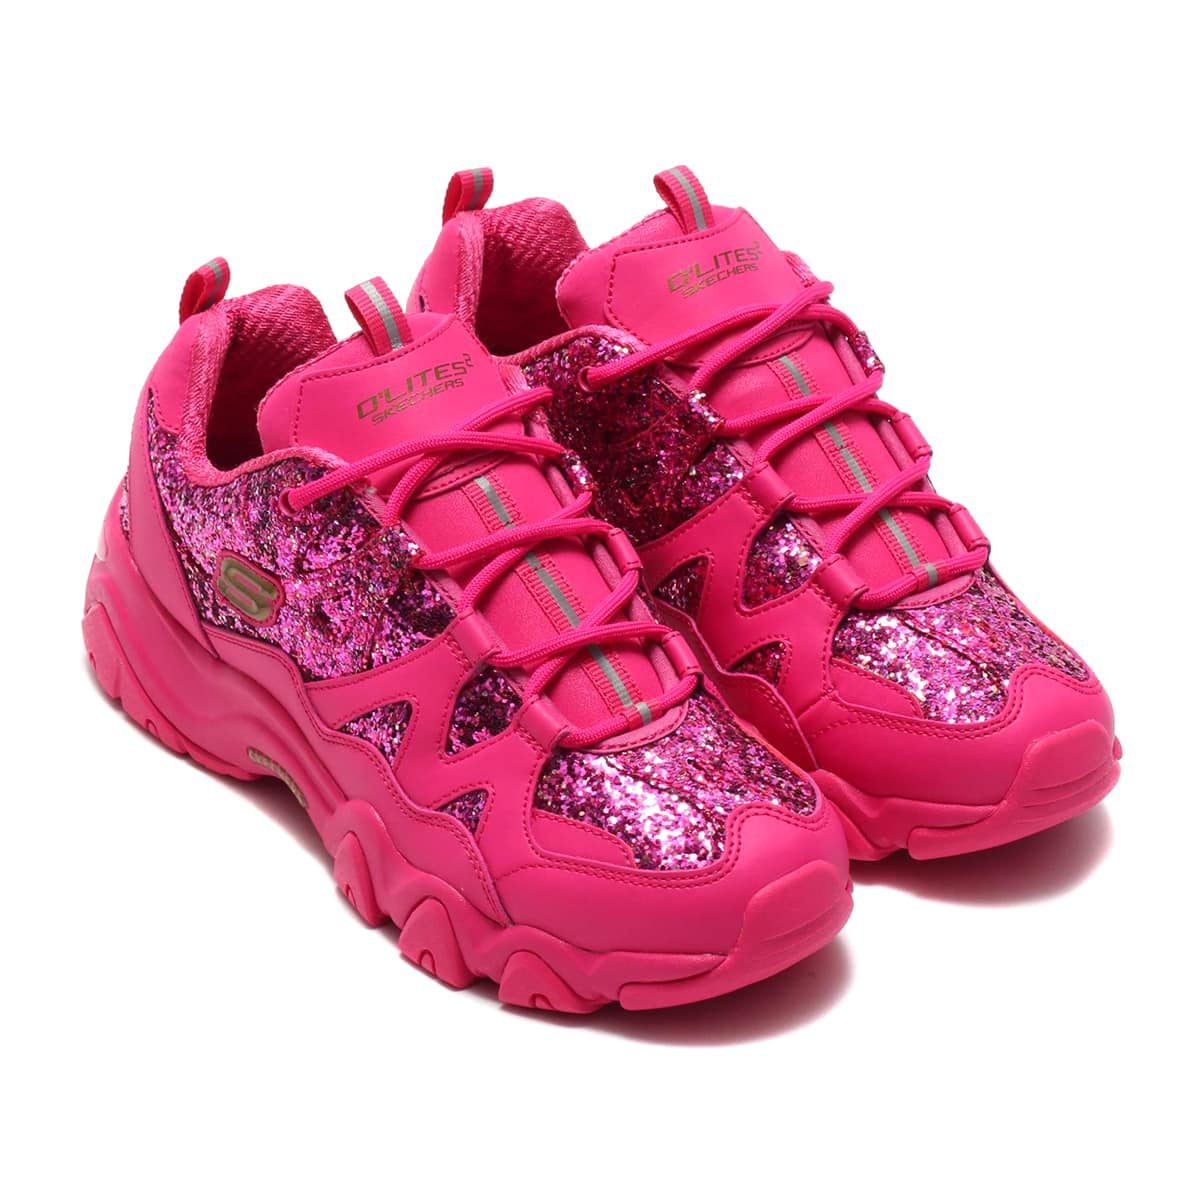 SKECHERS × atmos pink D'LITES 2 - CRYSTAL DAZZLE HPK 19FA-S_photo_large